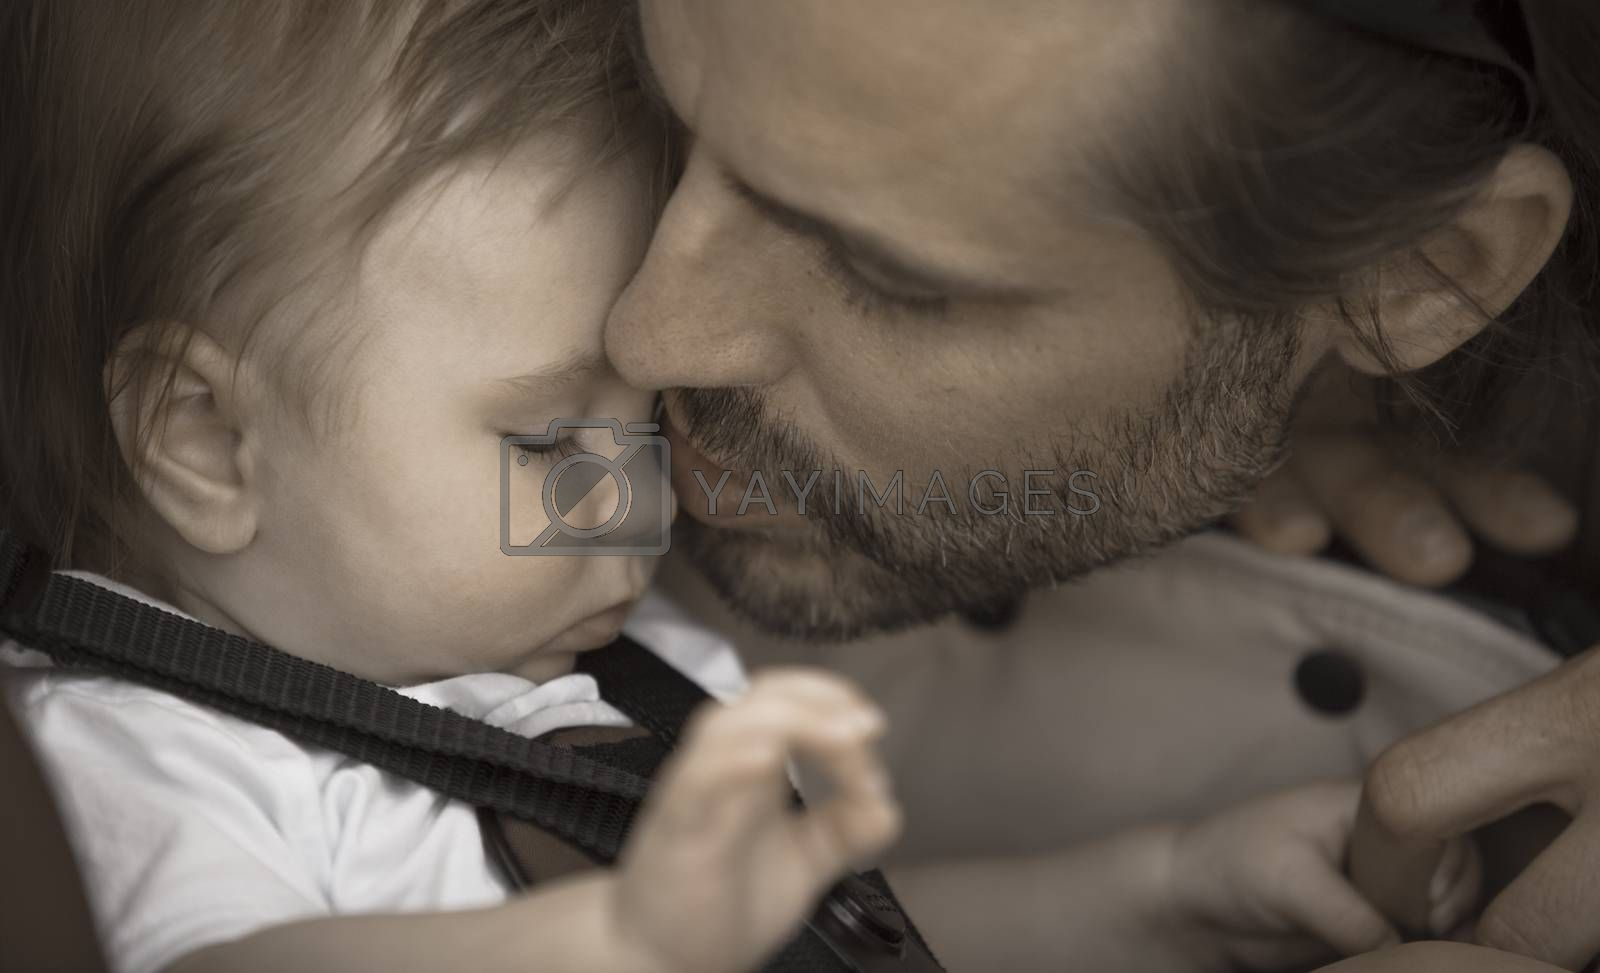 A father is kissing gently his young baby boy on the nose. Aged photo effect.